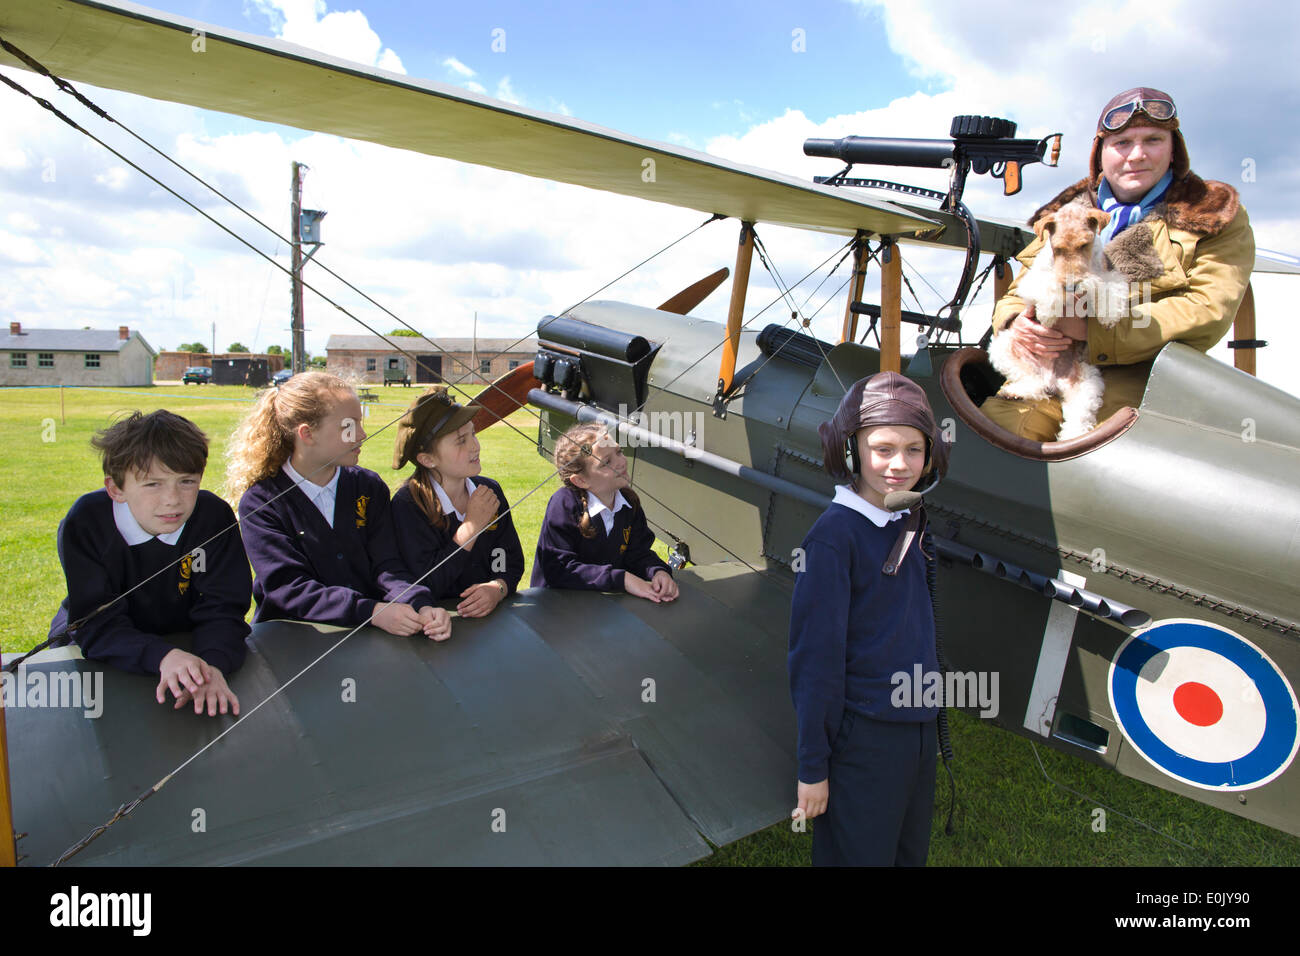 Stow Maries Aerodrome, UK. 14th May, 2014. Commemoration of Edgar Roberts WWI Royal Flying Corps Pilot accompanied on his fighter pilot missions by his terrier Mersea Mick Picture shows pupils (l-r) Ben Rumble, Zoe Clegg, Alannah Murrel, Amber Jones and Cameron Hope (wearing memorabilia hat) from the Mersea Island School visiting Stow Maries Aerodrome gathered around a SE5a replica WWI aorplane alongside pilot (Trevor Poole). Credit:  Clickpics/Alamy Live News - Stock Image